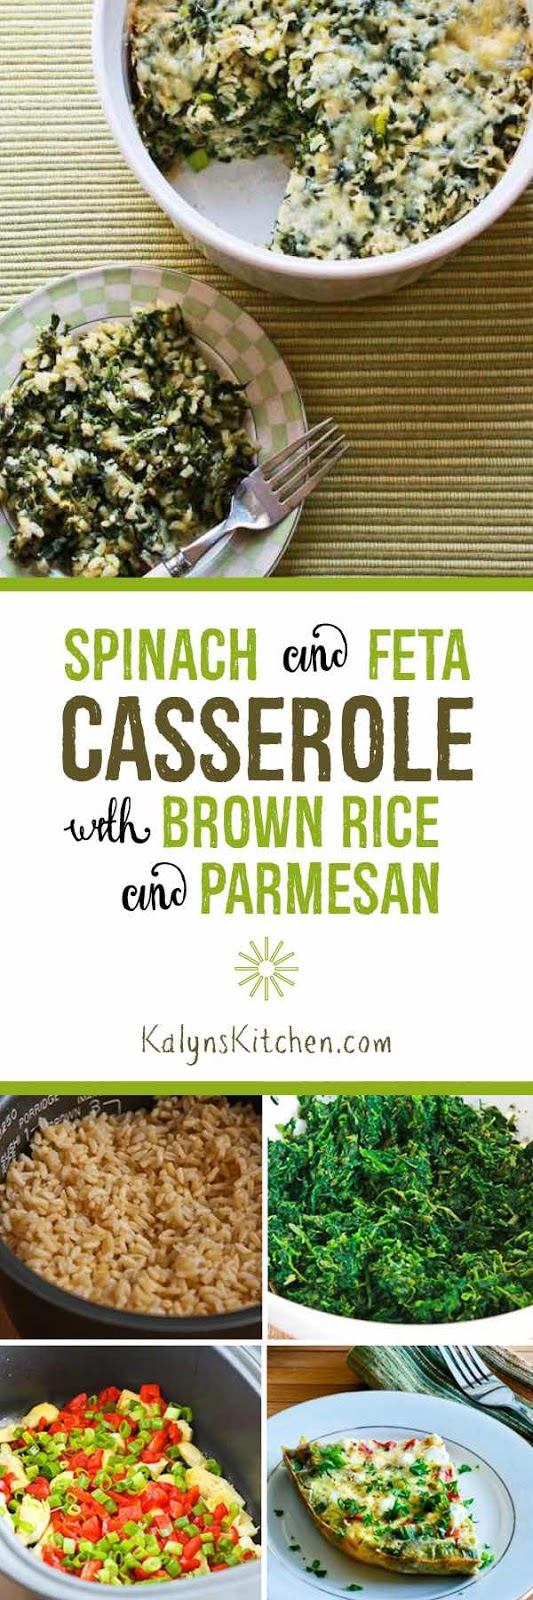 Spinach and Feta Casserole with Brown Rice and Parmesan [KalynsKitchen ...